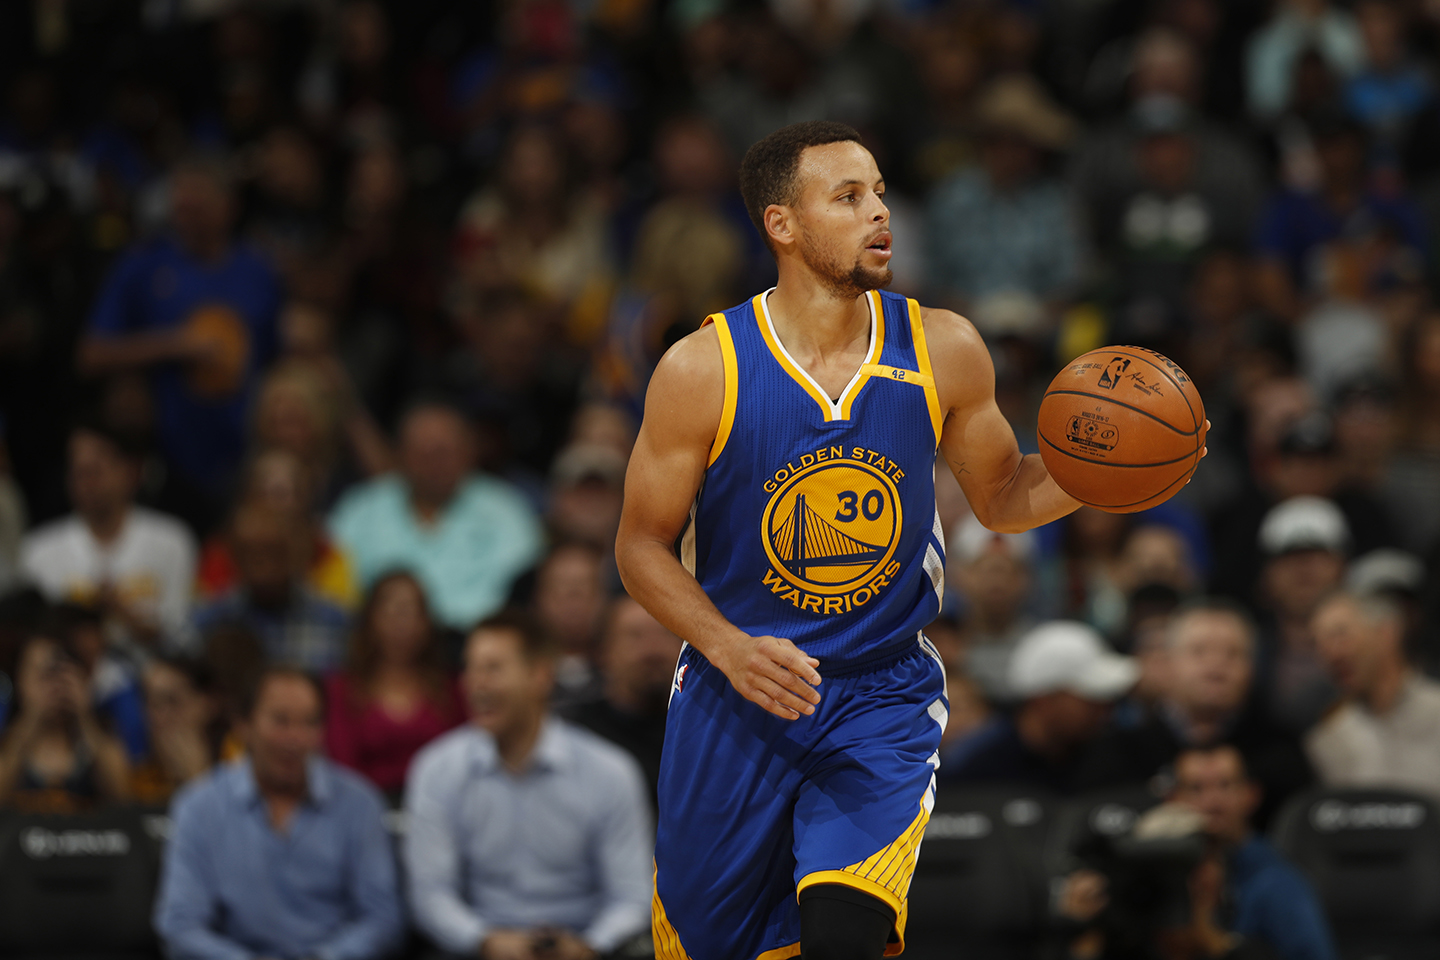 0f788aac6f947 Girl's Letter to Steph Curry Changed How Under Armour Sells His ...